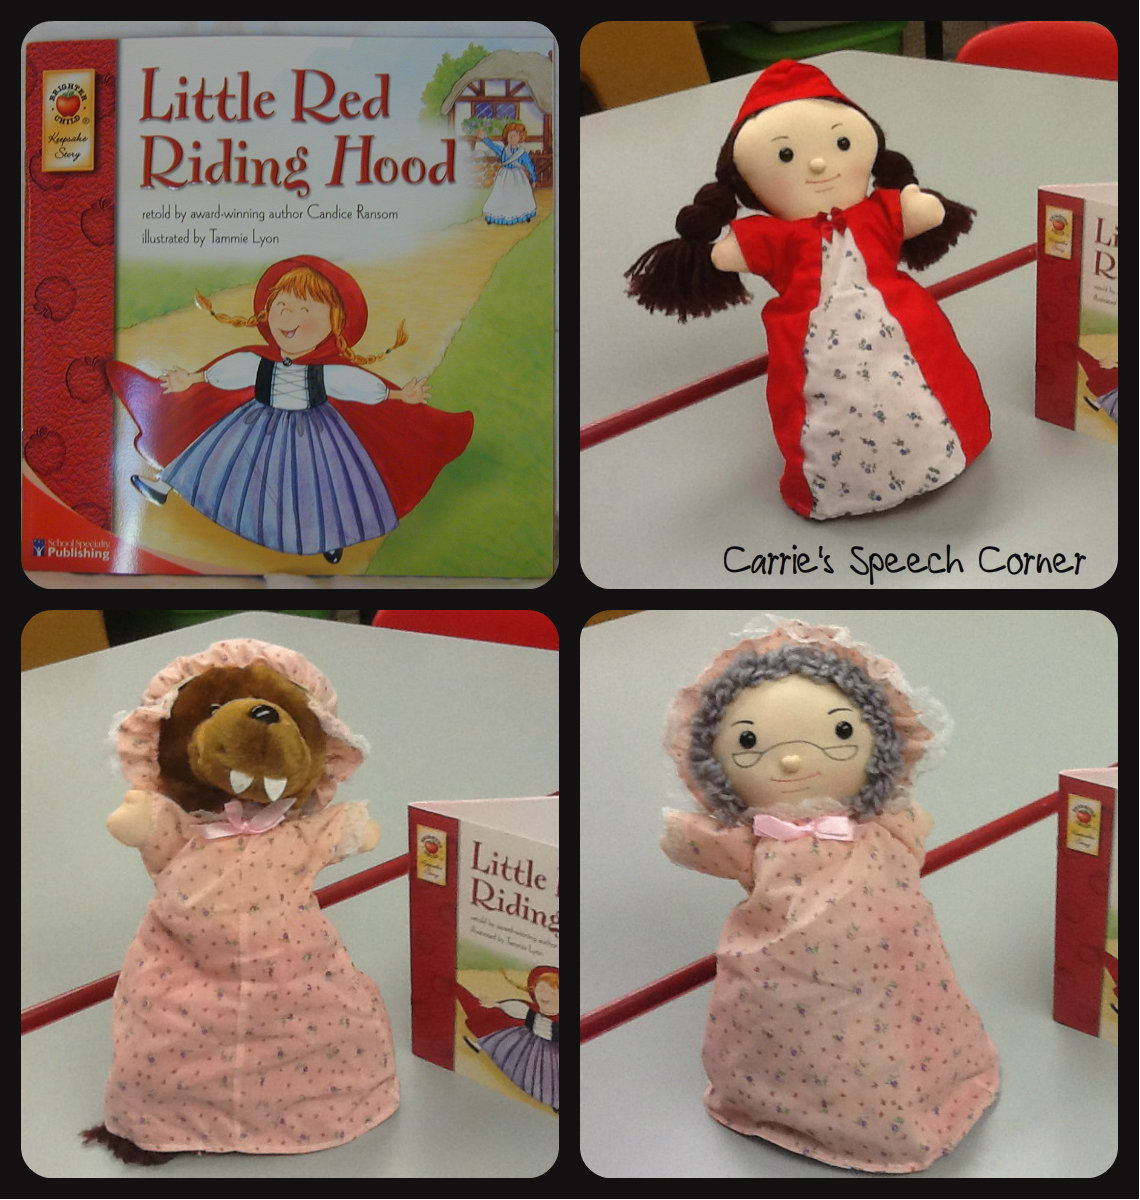 Carrie S Speech Corner Book S Of The Week Little Red